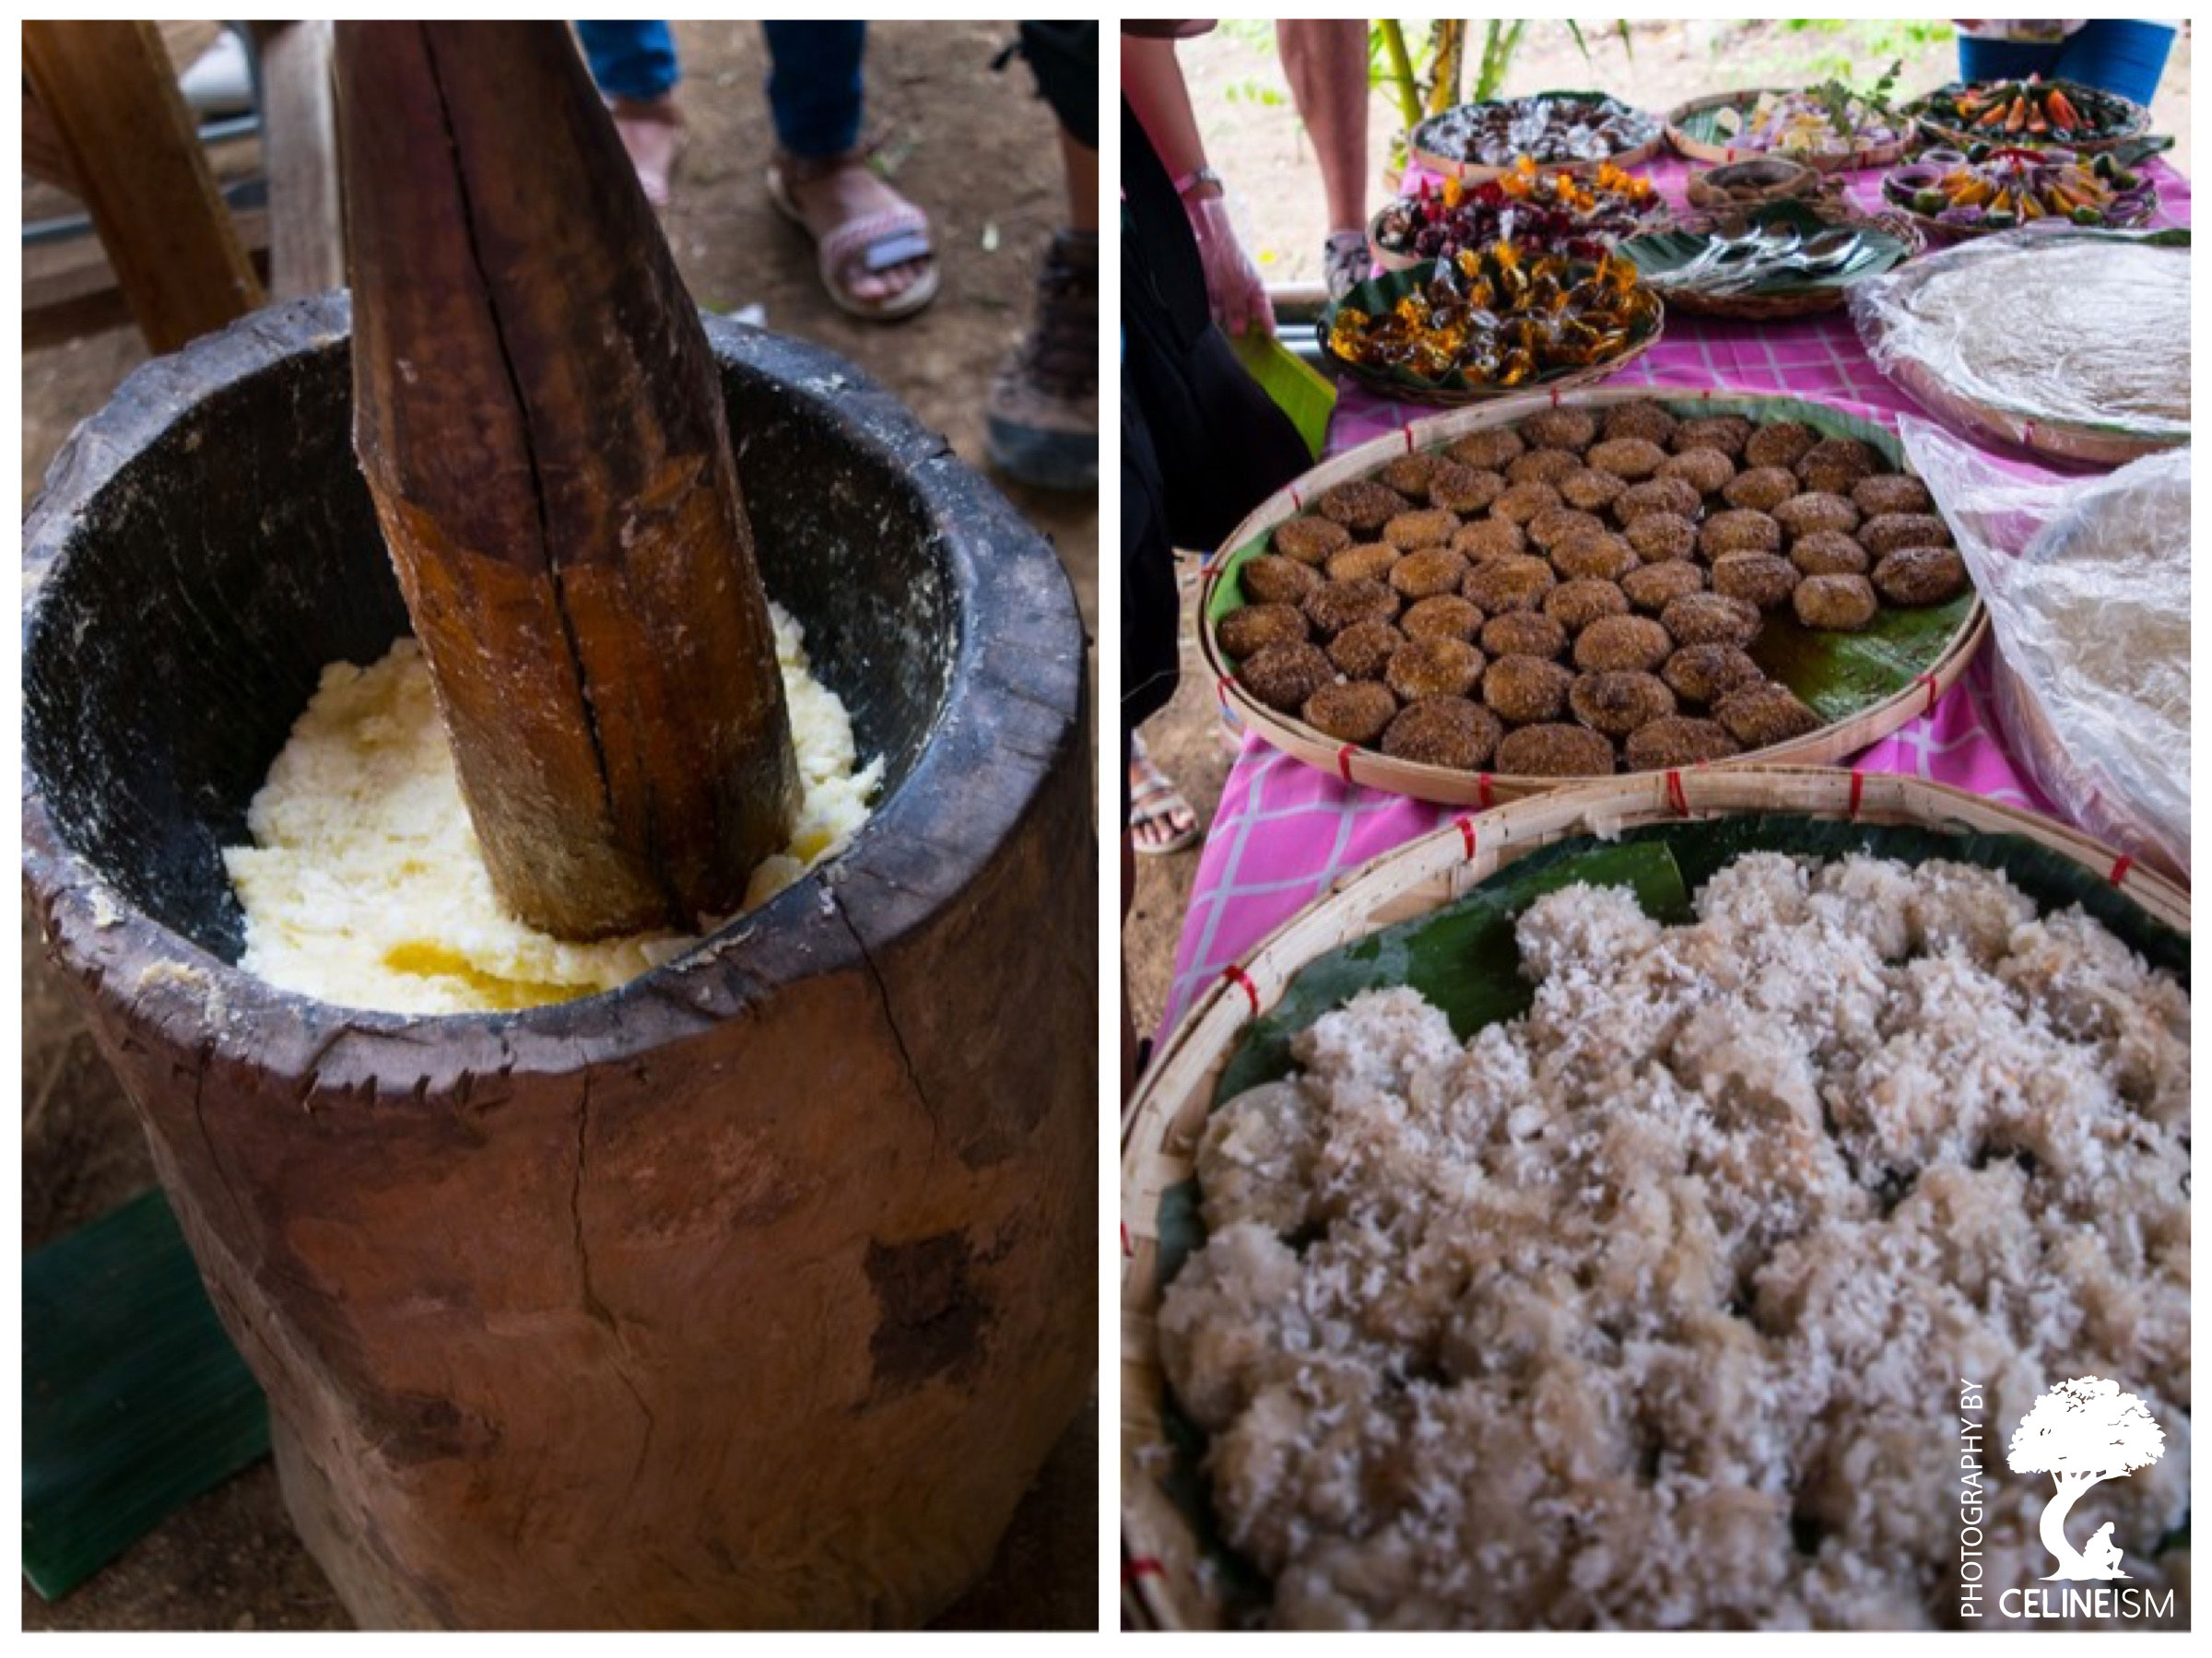 From farm to table. Rice delicacies at the farm